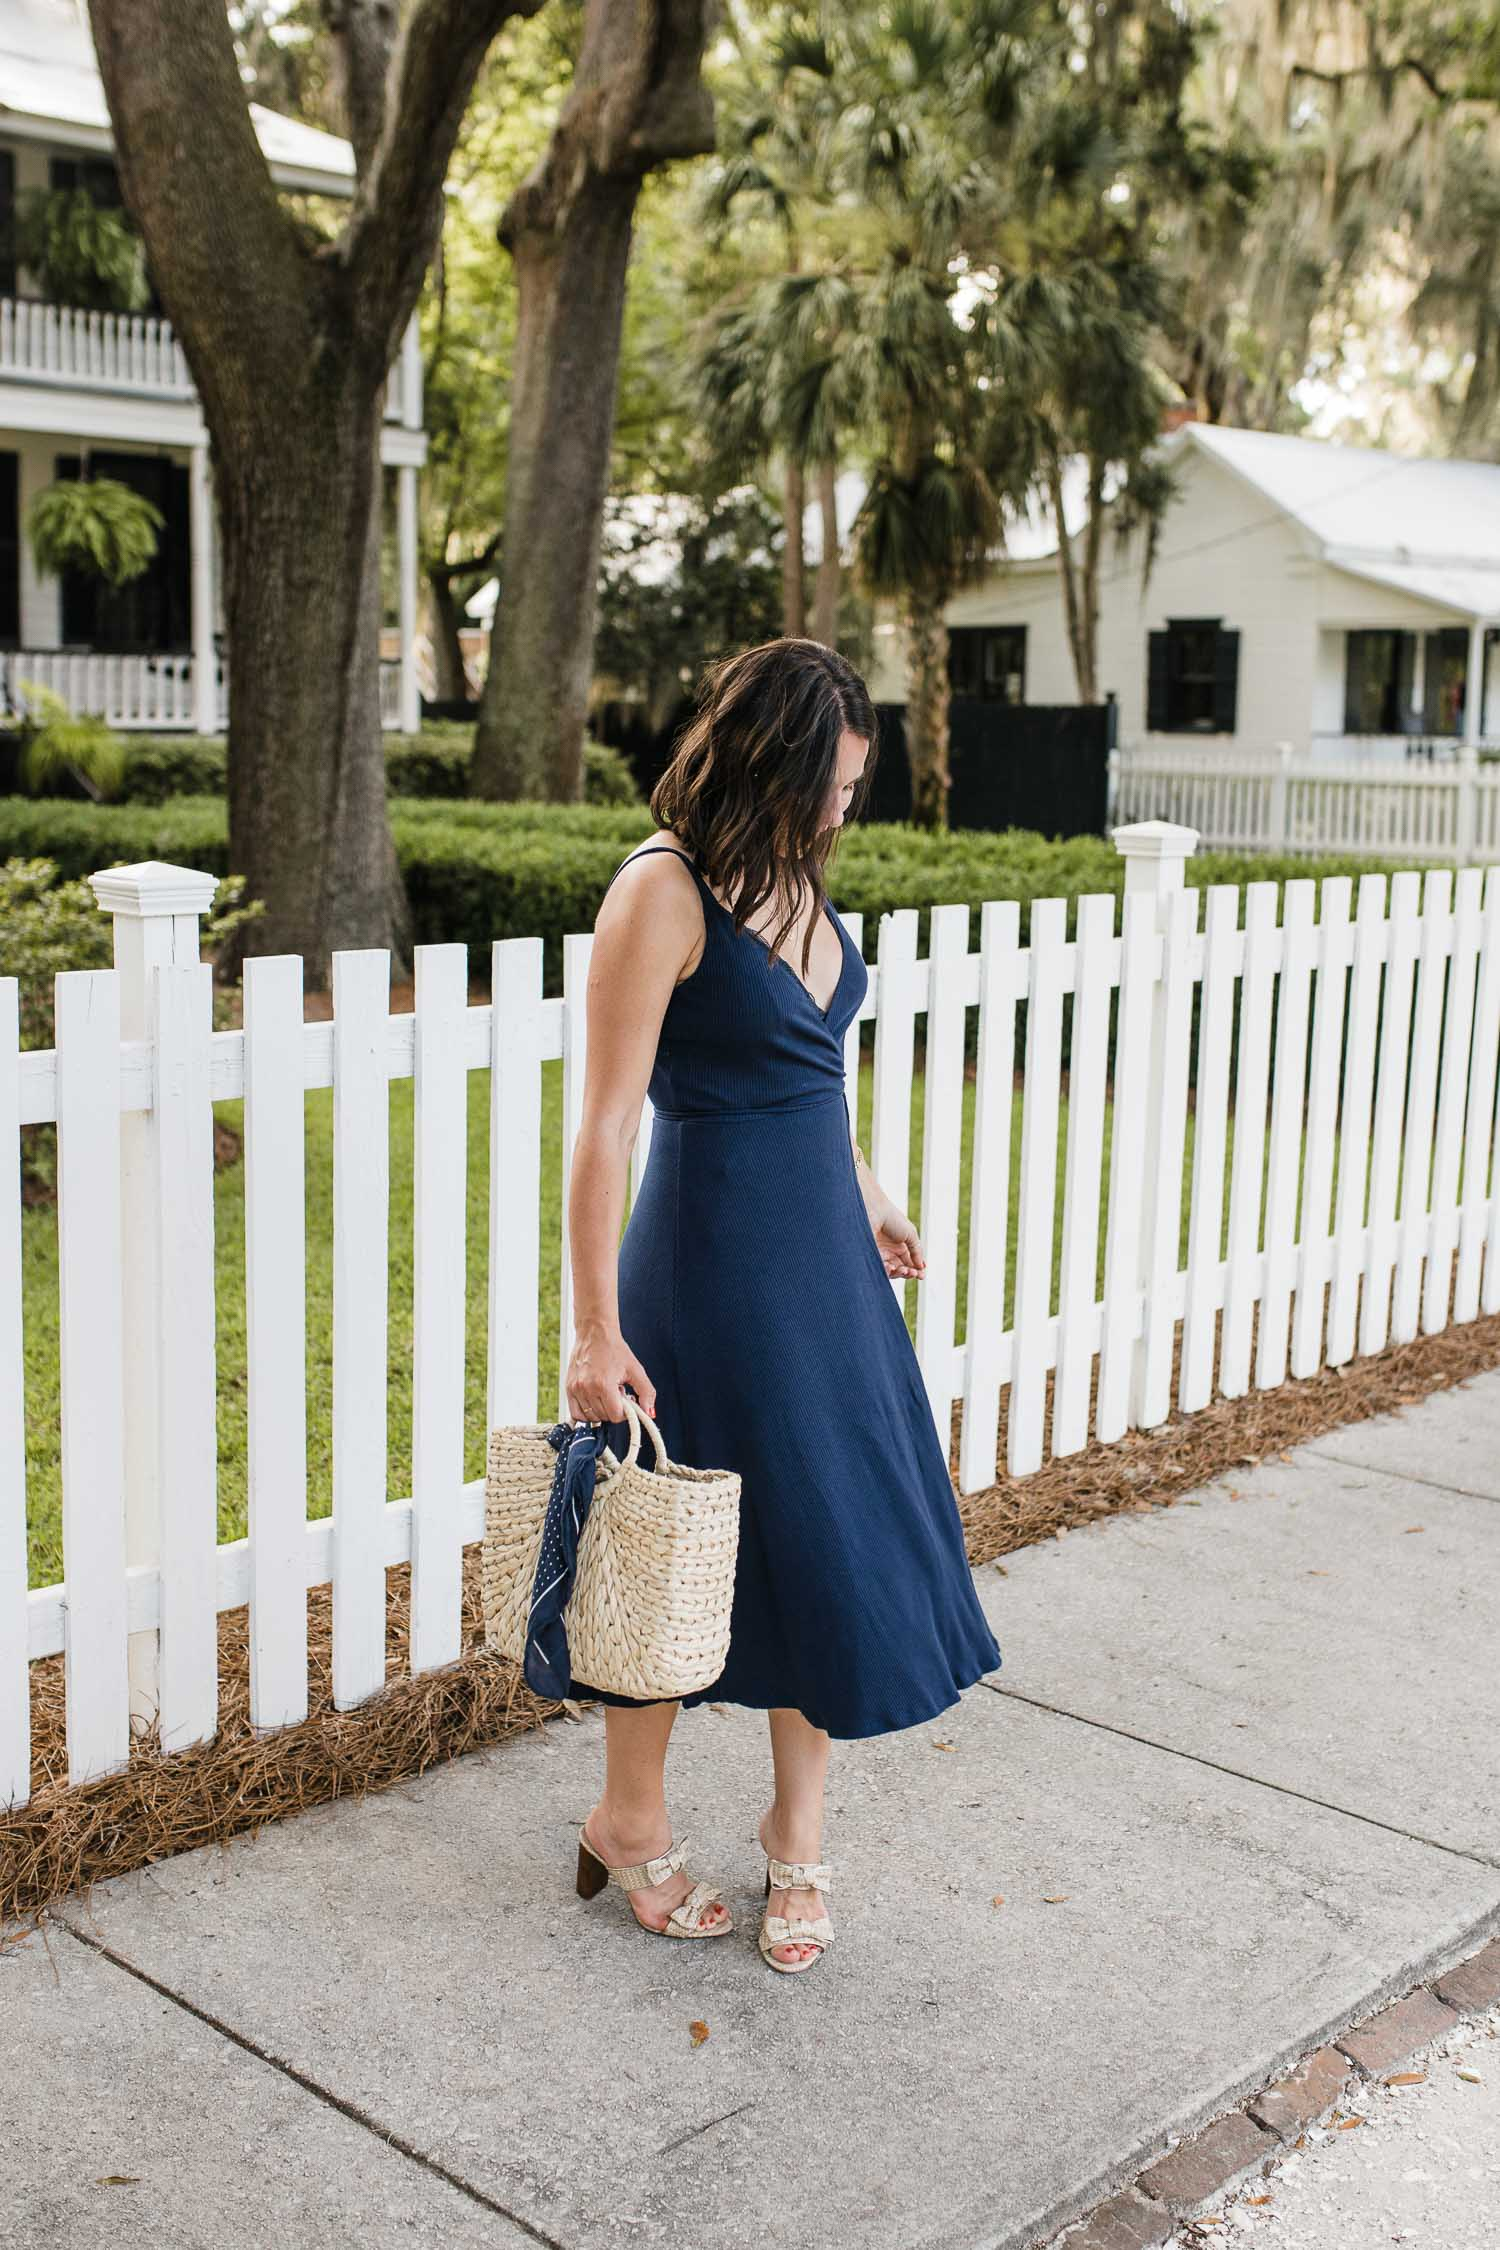 MY STYLE VITA OUTFIT DETAILS: REFORMATION DRESS, ANN TAYLOR SANDALS, HAT ATTACK BAG